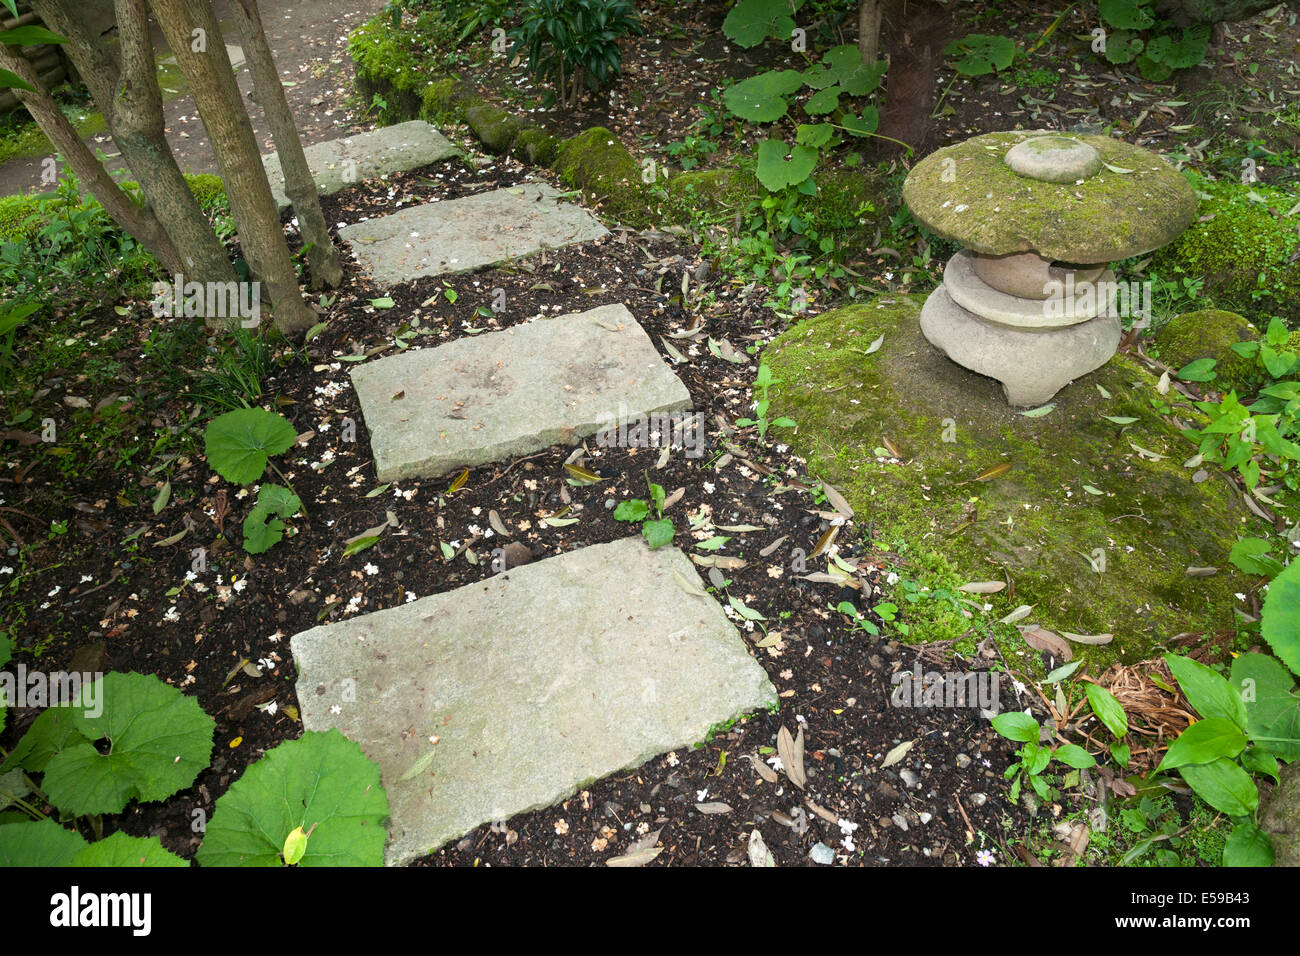 Stone Zen Garden Small stone lantern close to pathway steps in japanese zen garden small stone lantern close to pathway steps in japanese zen garden workwithnaturefo